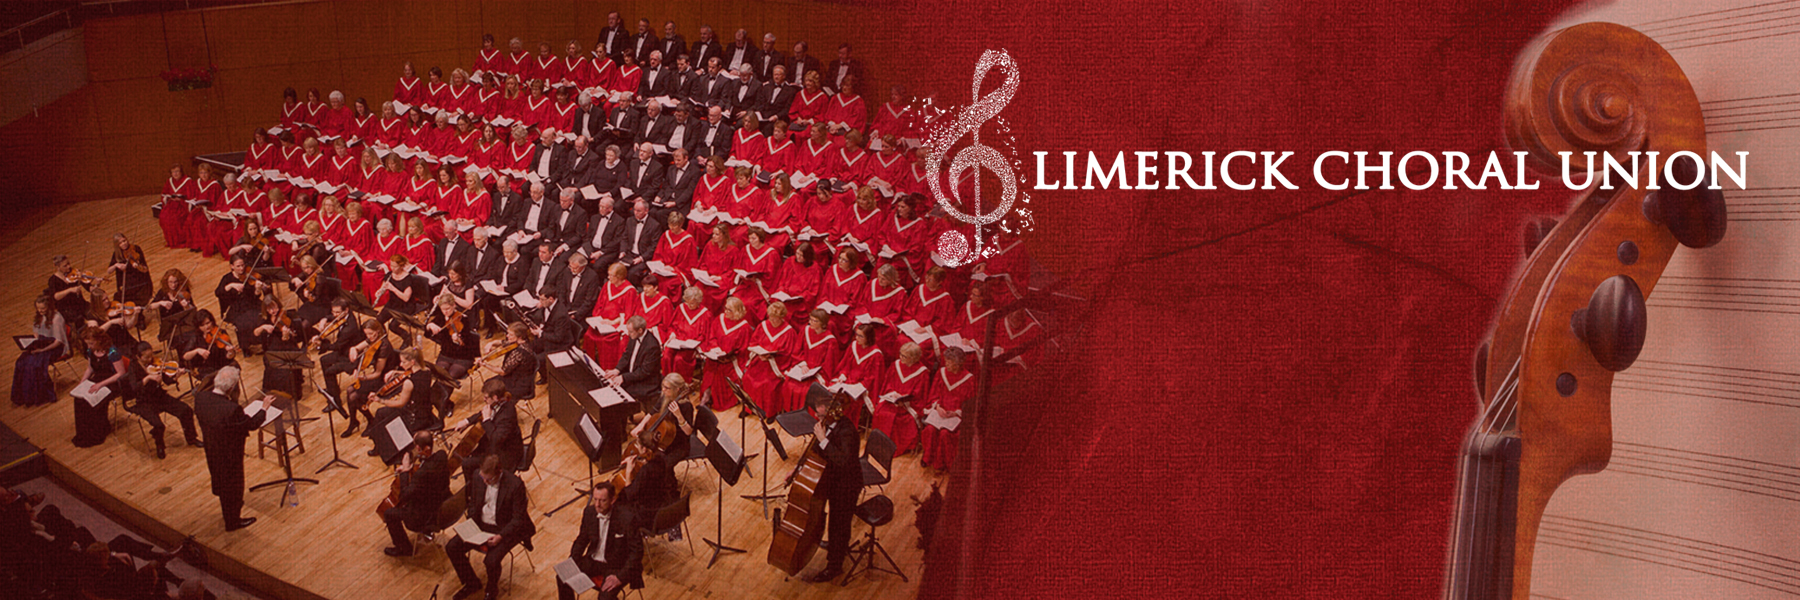 Limerick Choral Union